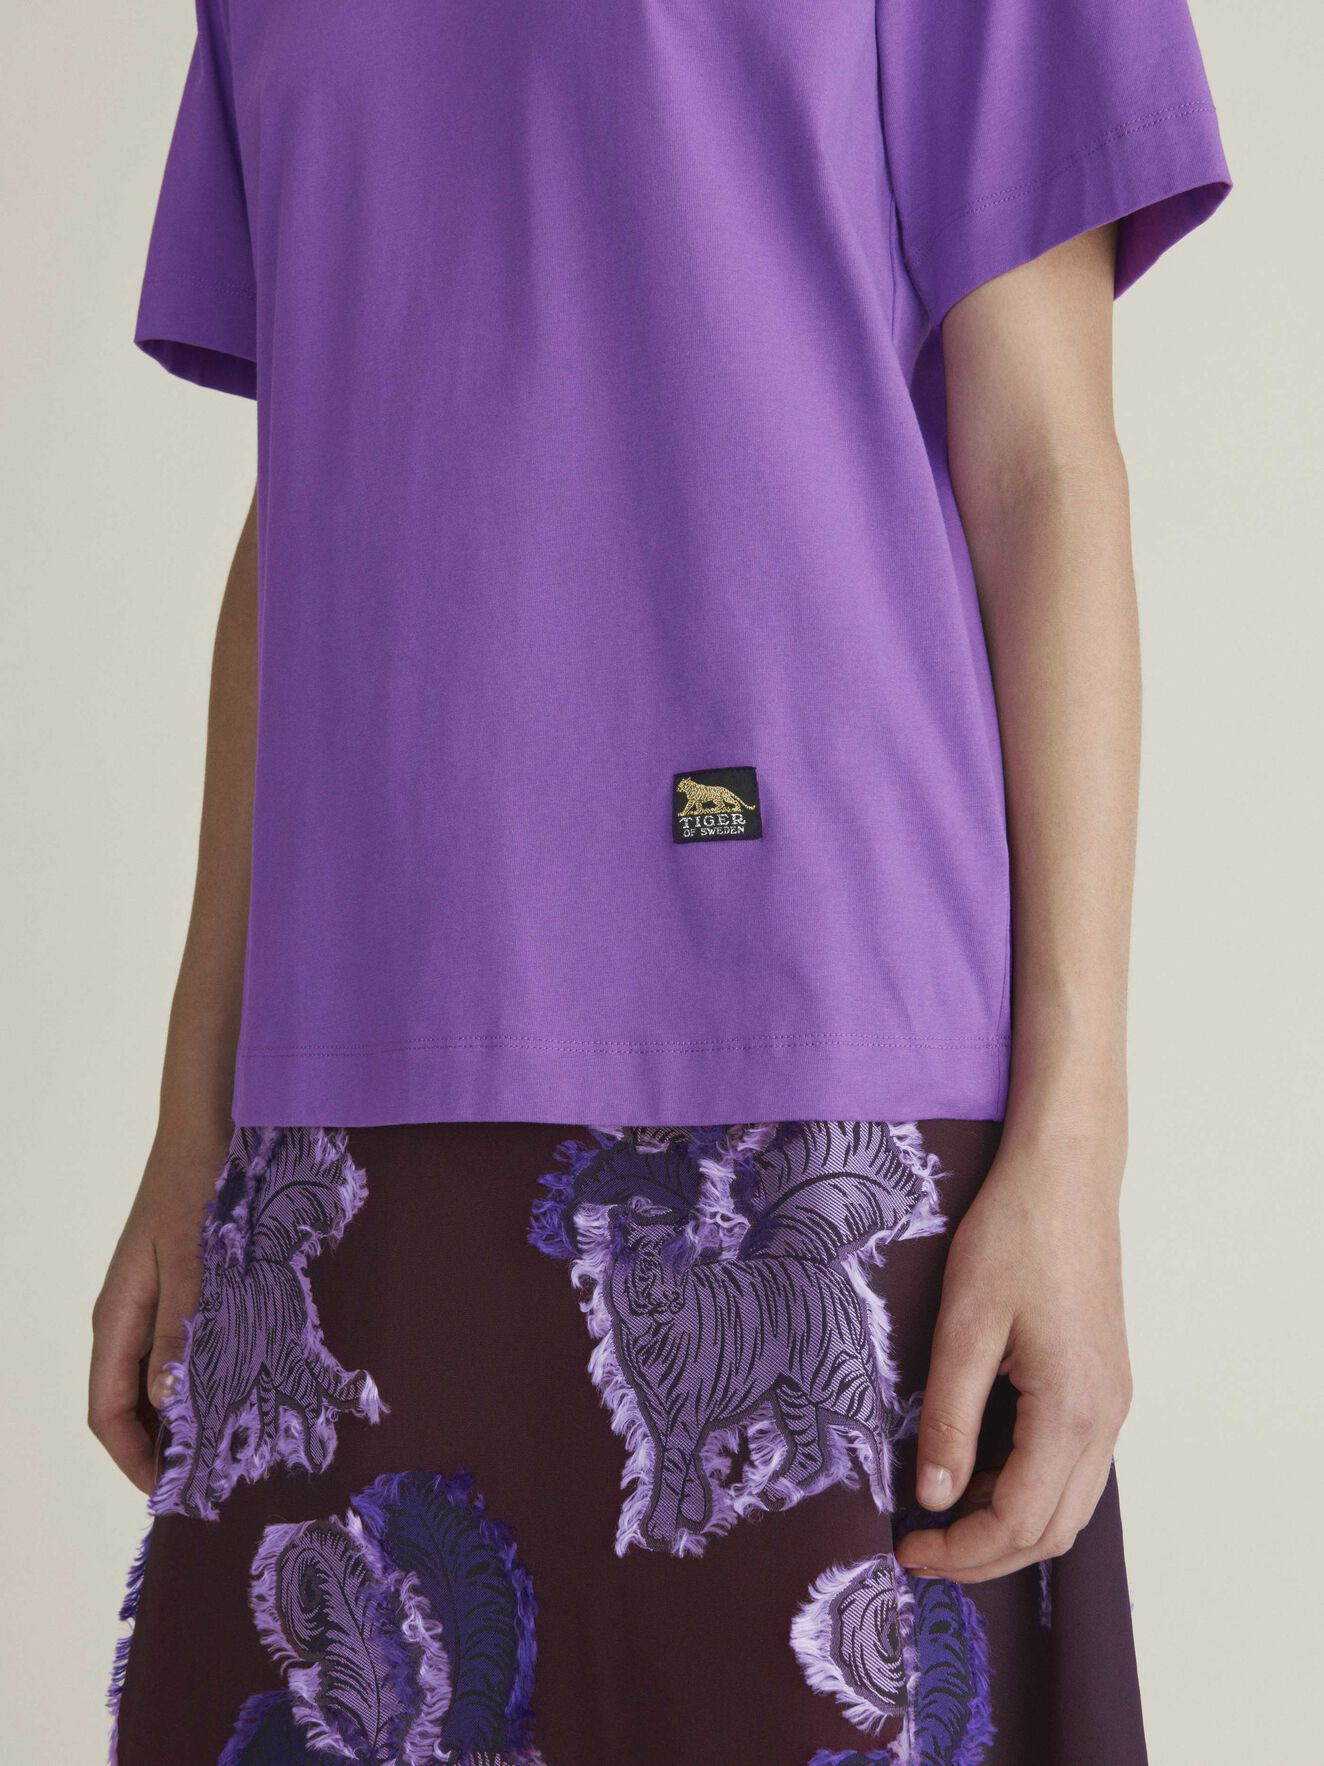 Dellana T-Shirt in Smashing Lilac from Tiger of Sweden